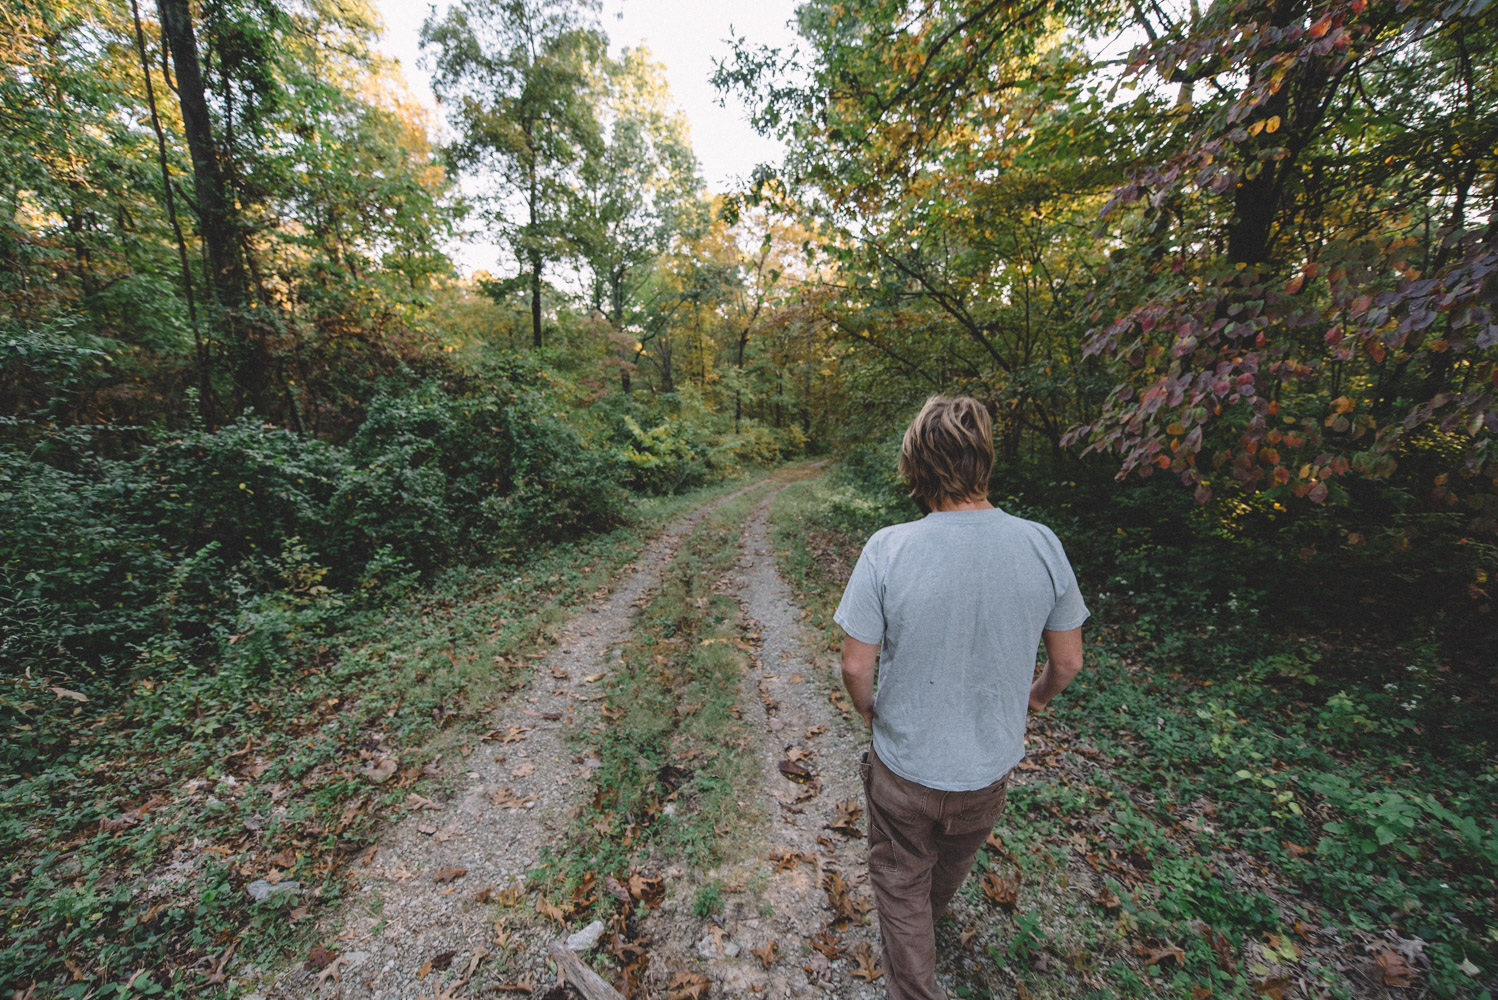 Scratch-Brewing-Co-Foraging-Carbondale-Ava-Illinois-Good-Beer-Hunting-Matt-Sampson-Photography_800.jpg